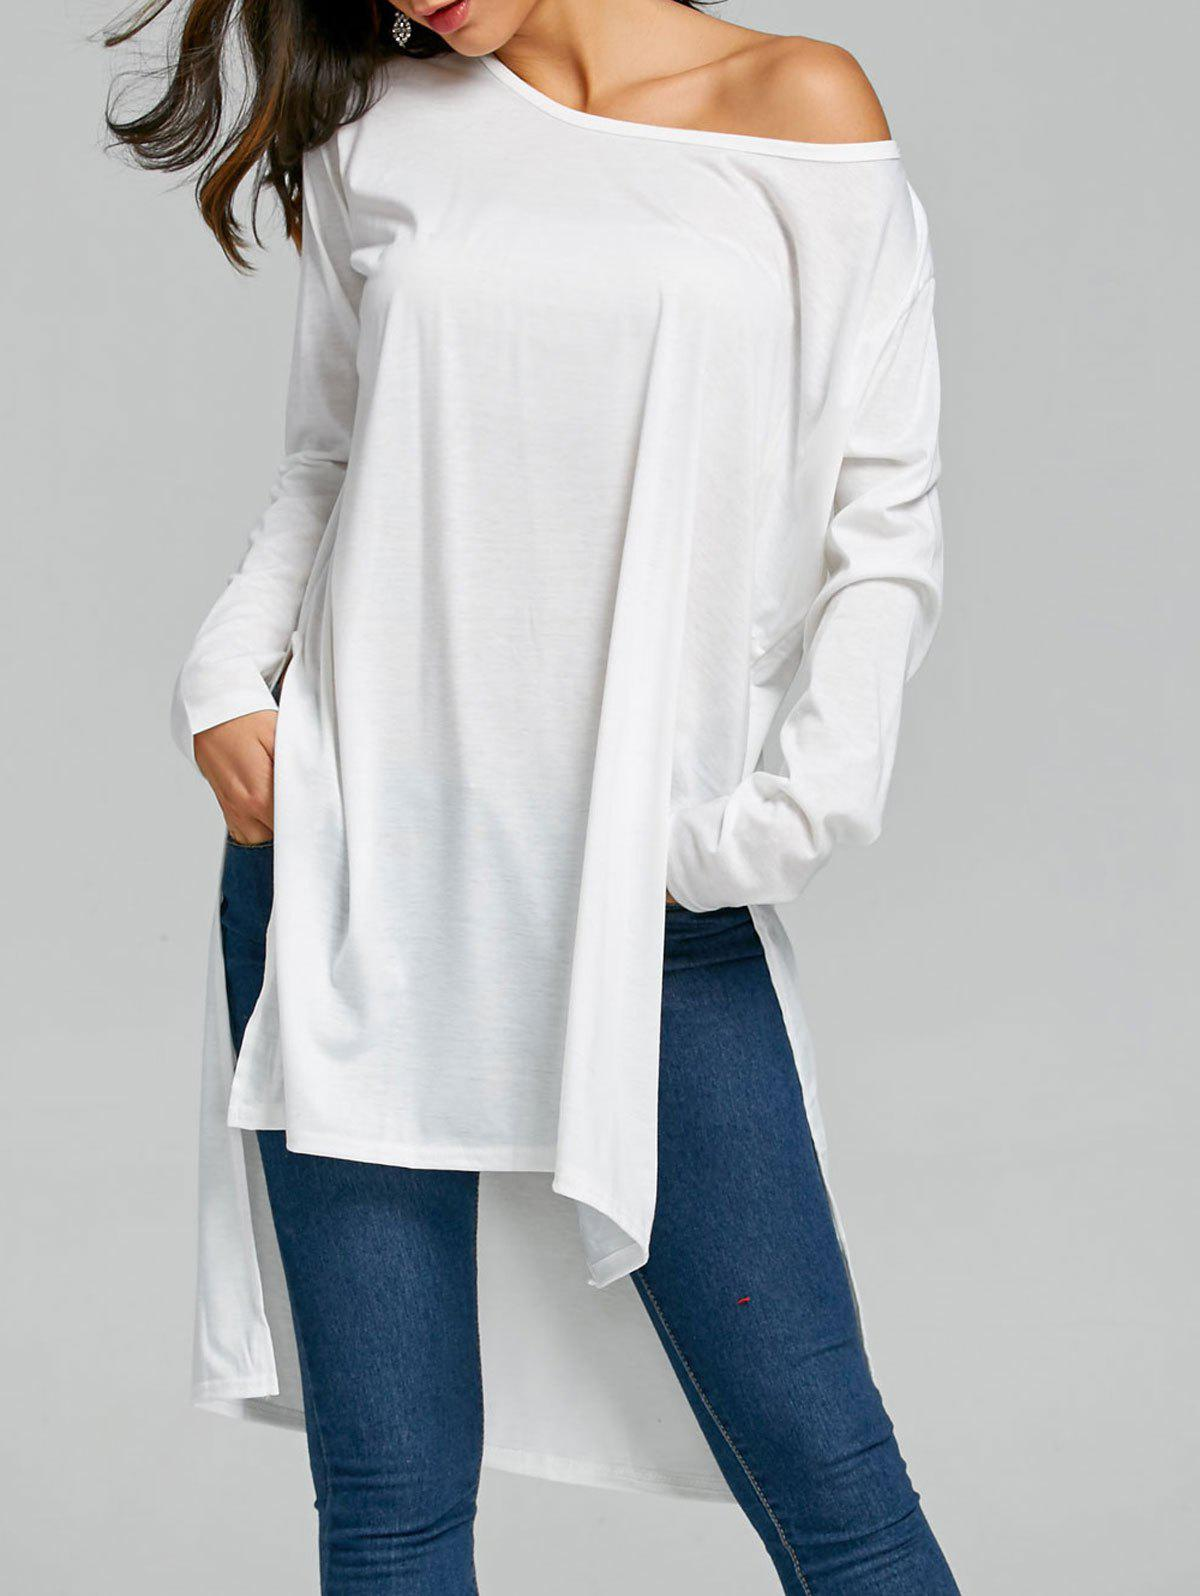 Side Slit Long Sleeve High Low TopWOMEN<br><br>Size: ONE SIZE; Color: WHITE; Material: Cotton,Polyester; Shirt Length: Long; Sleeve Length: Full; Collar: Scoop Neck; Style: Fashion; Pattern Type: Solid; Season: Fall,Spring; Weight: 0.2500kg; Package Contents: 1 x Top;